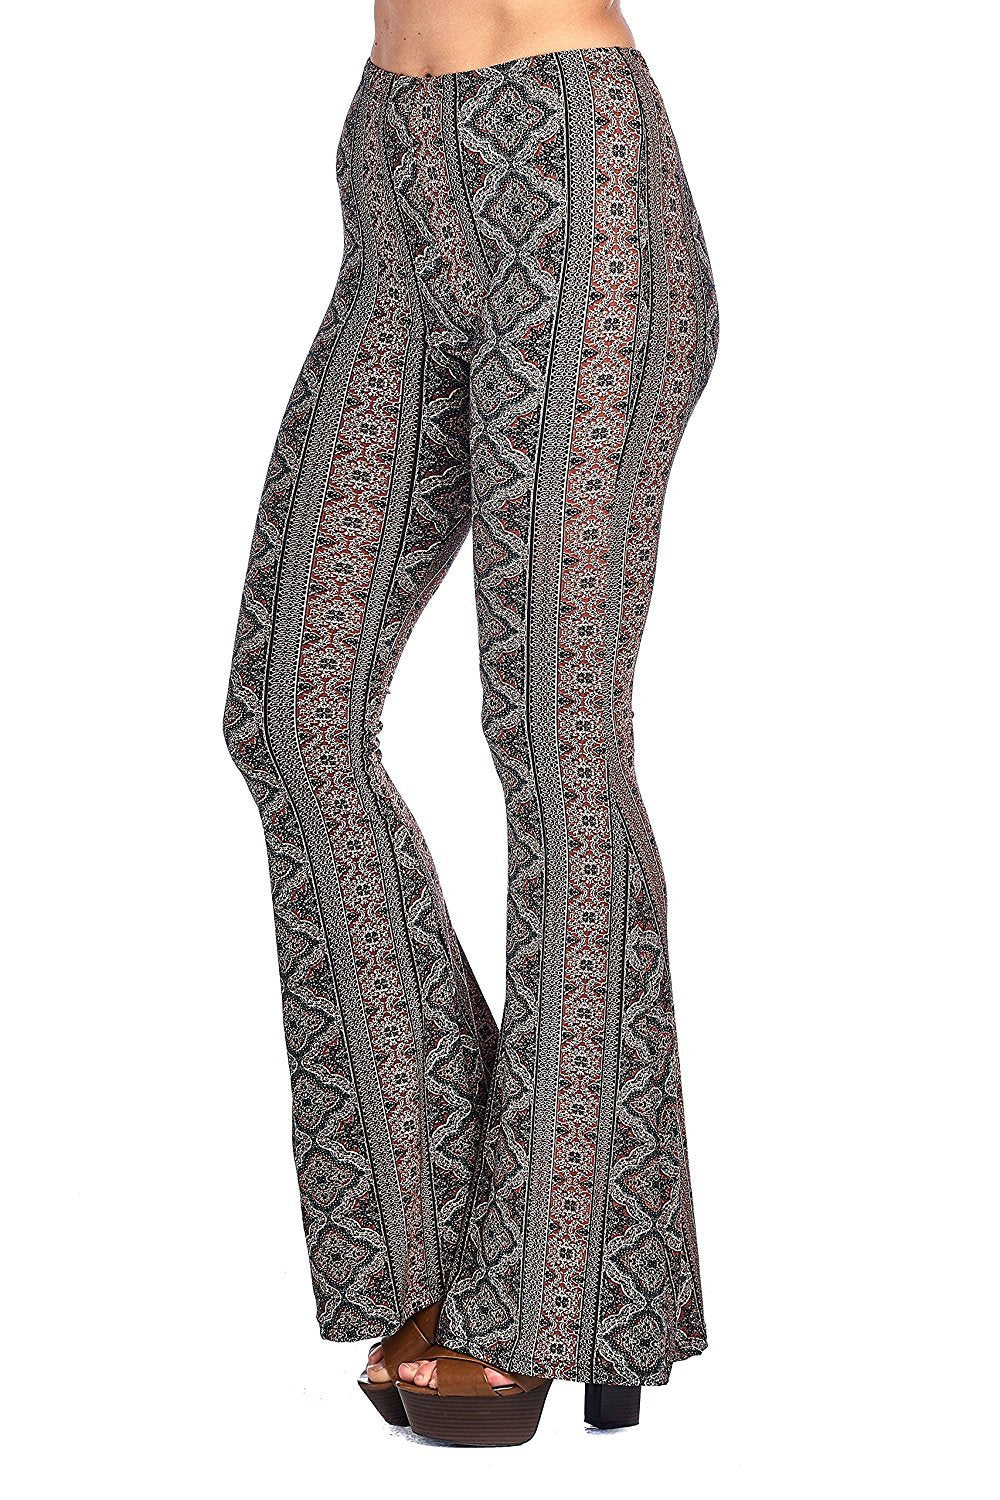 Khanomak Mid-Rise Waist Mixed Print Long Bell Bottom Flared Legging Pants